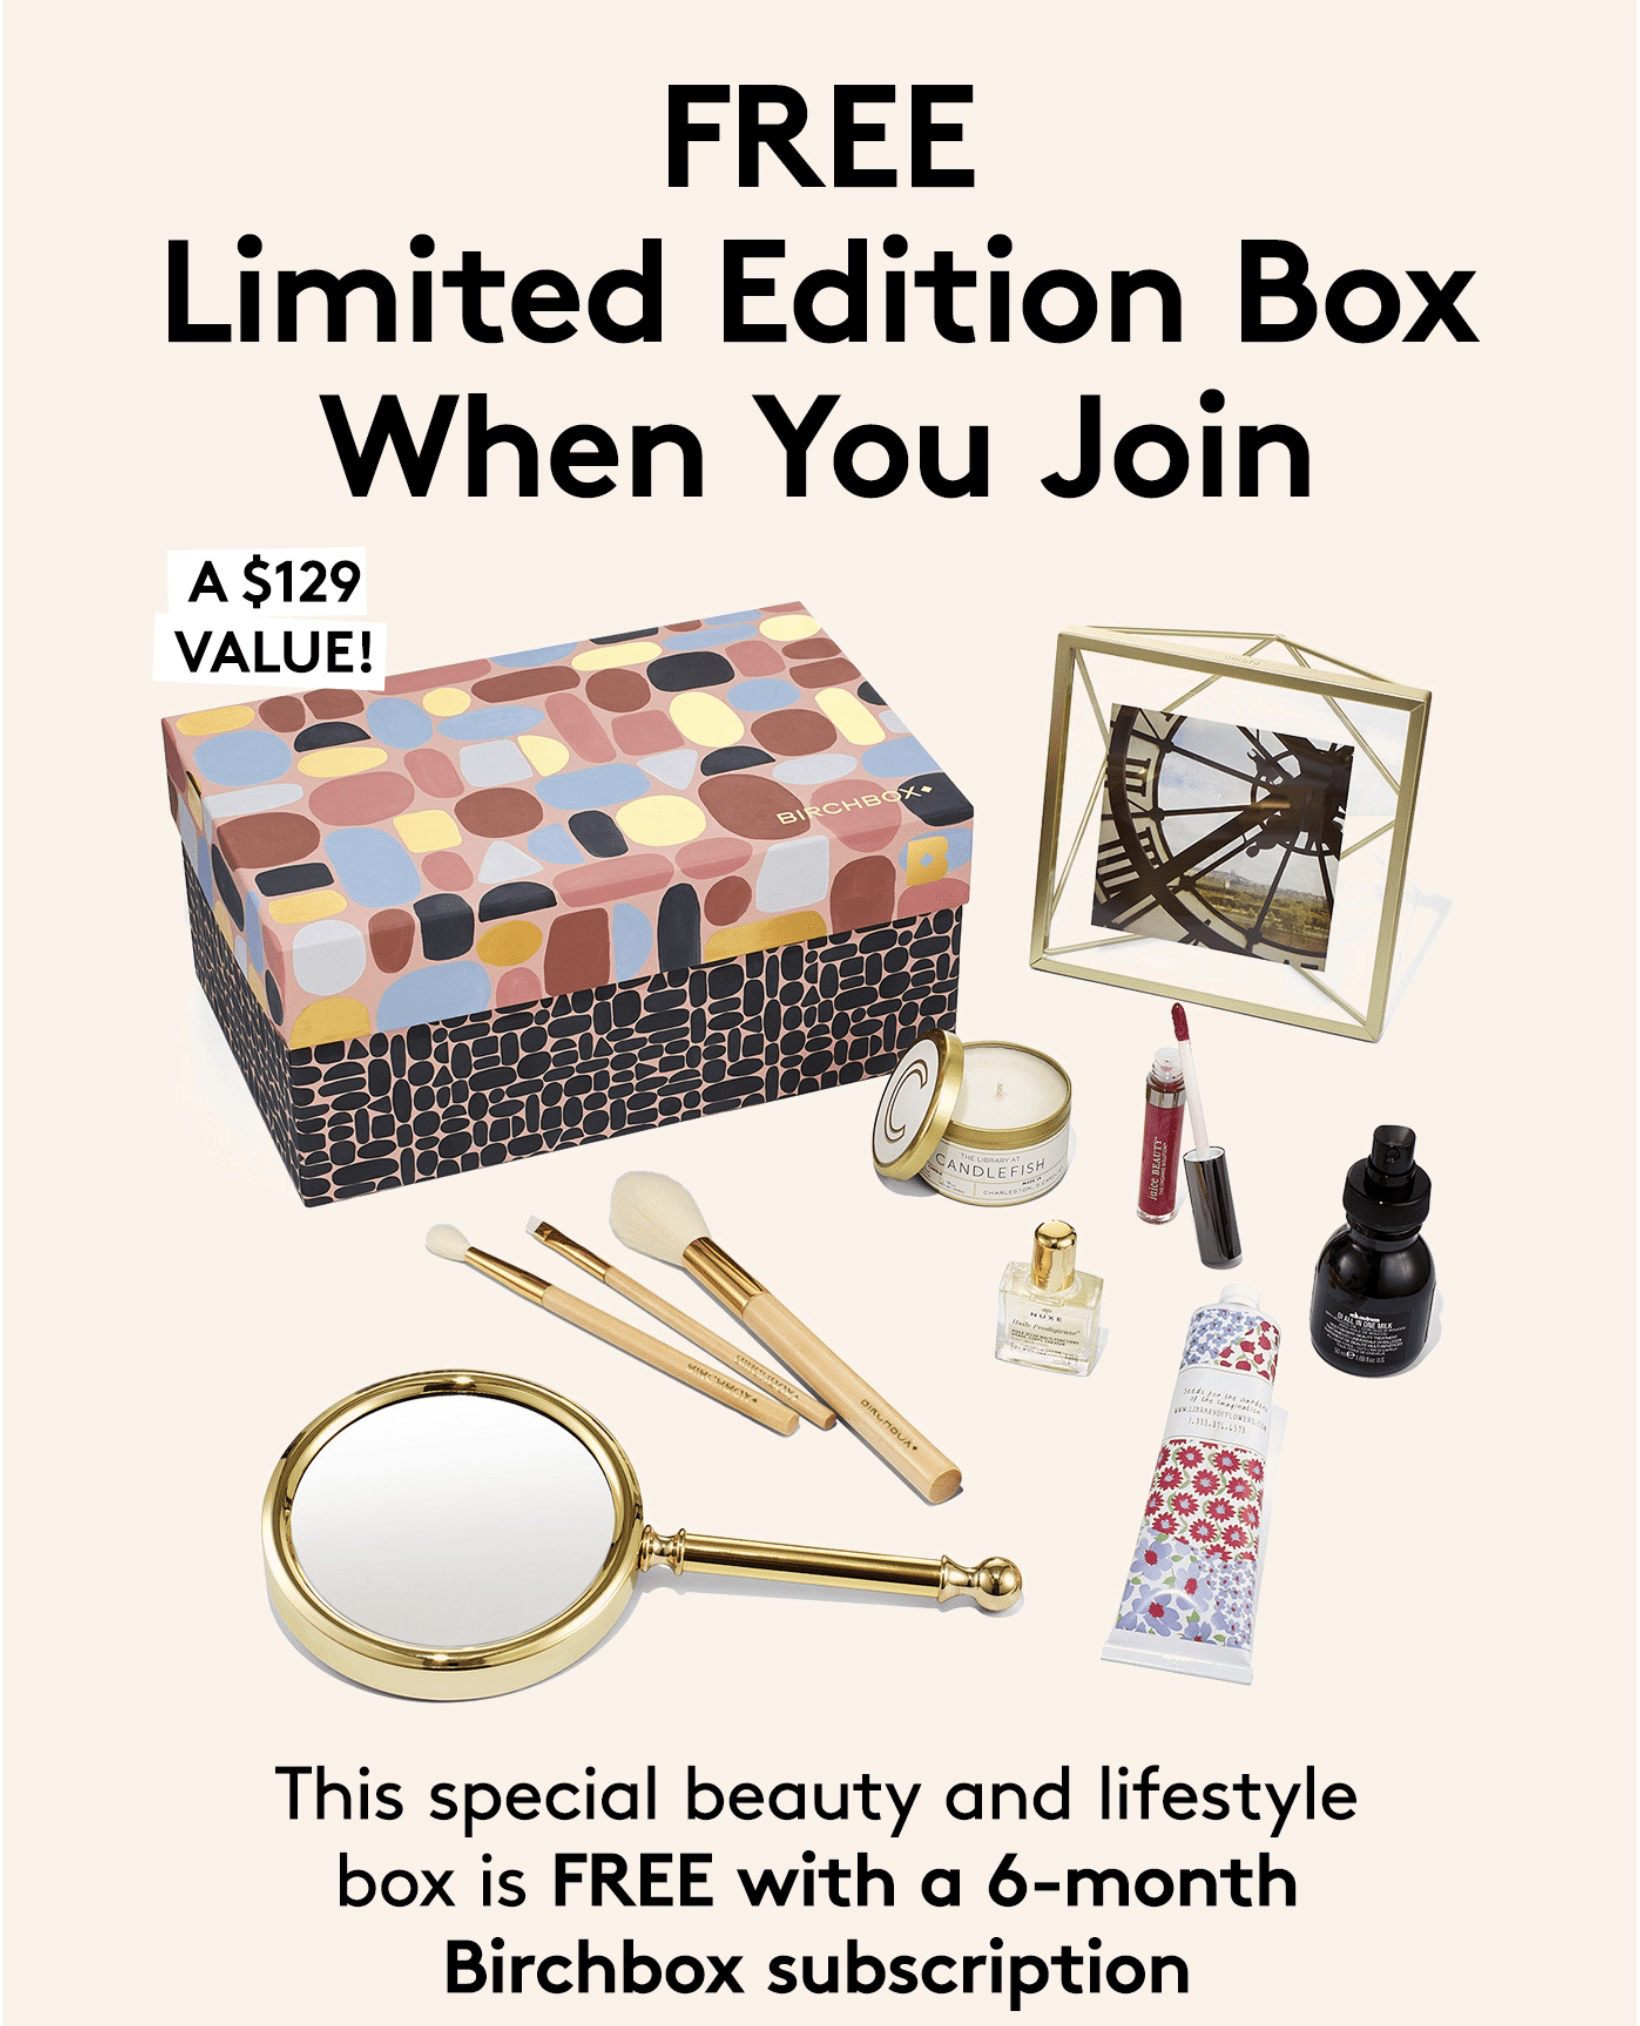 FREE Birchbox Limited Edition Box With 6 Month Subscription!